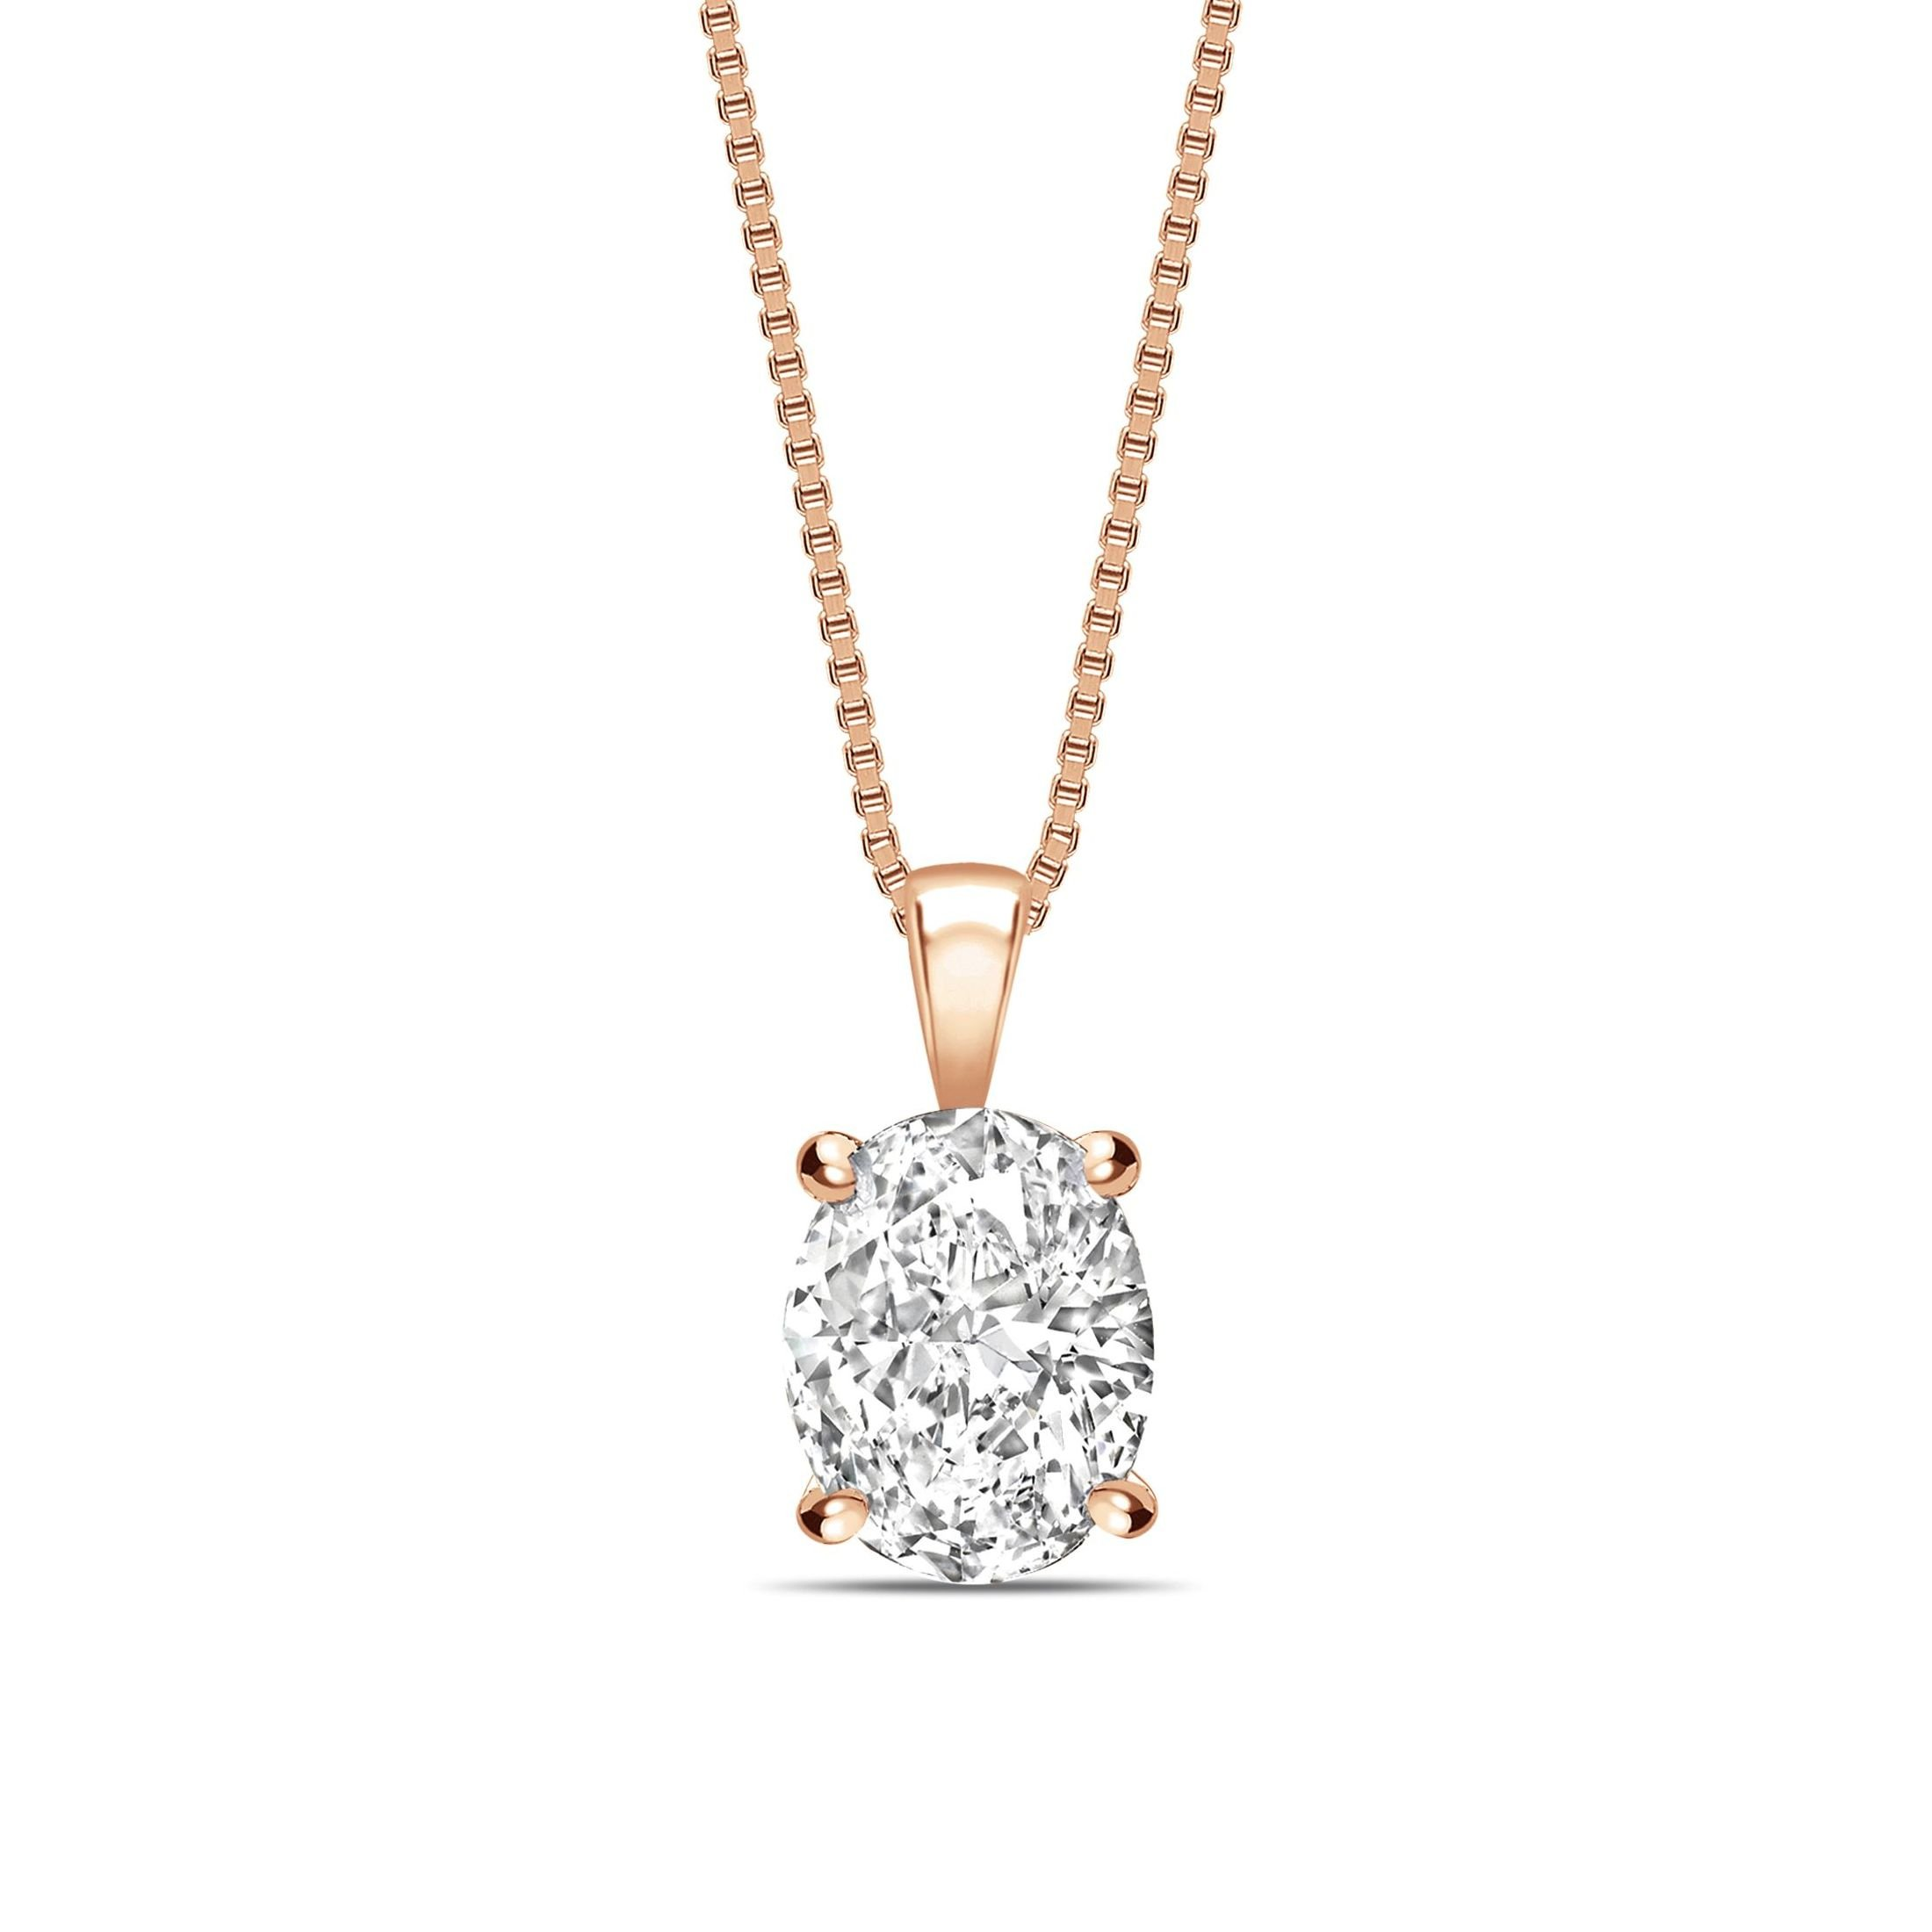 Classic Popular Style Oval Shape Solitaire Diamond Necklace